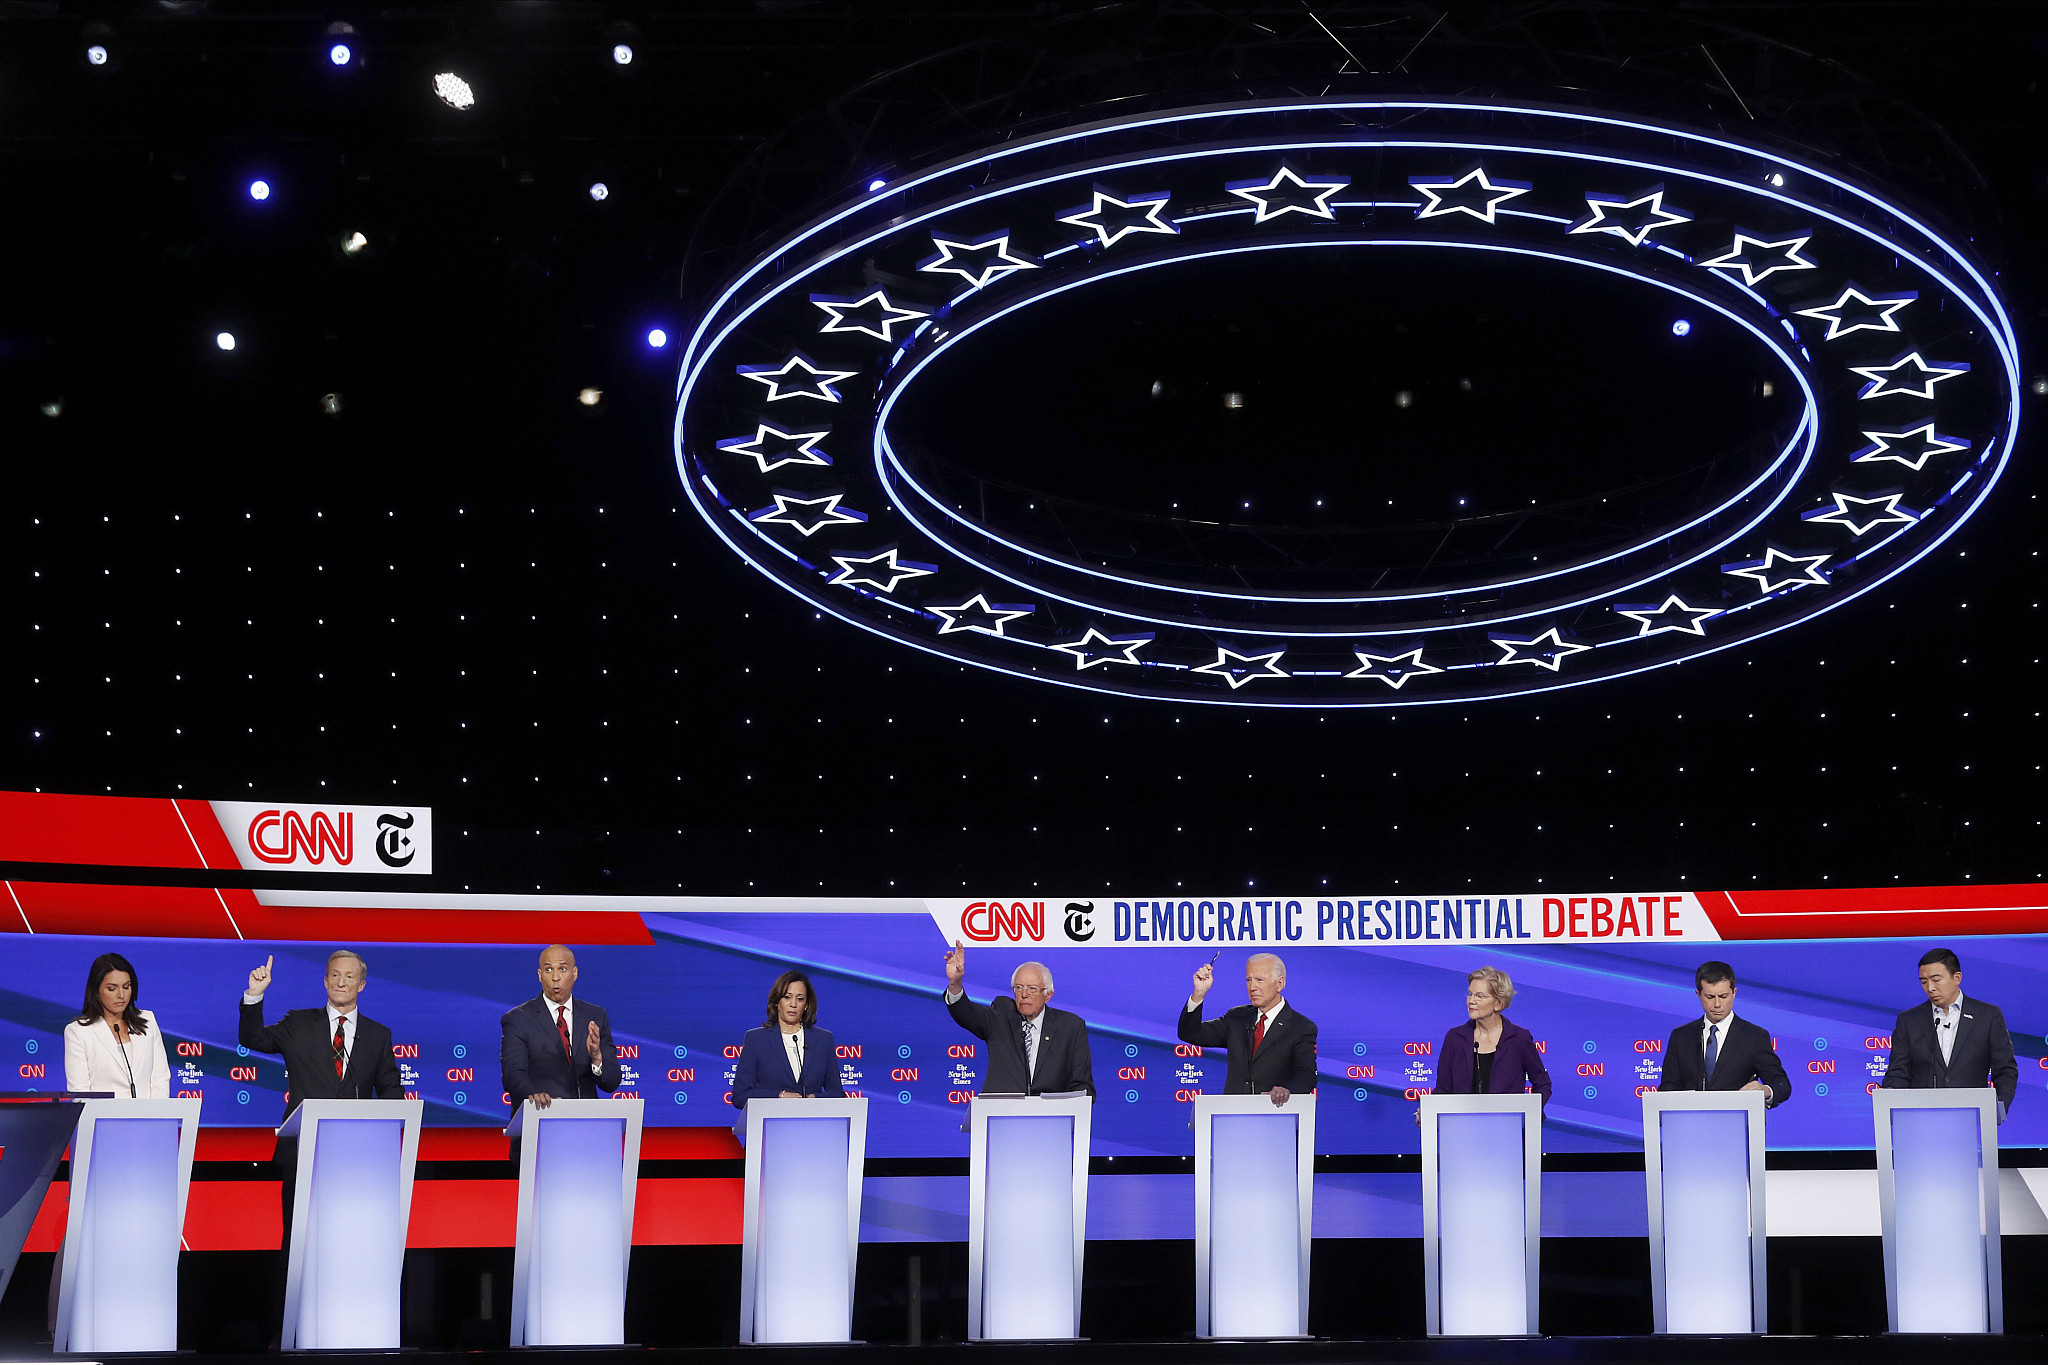 Key takeaways from the Democratic presidential candidate debate